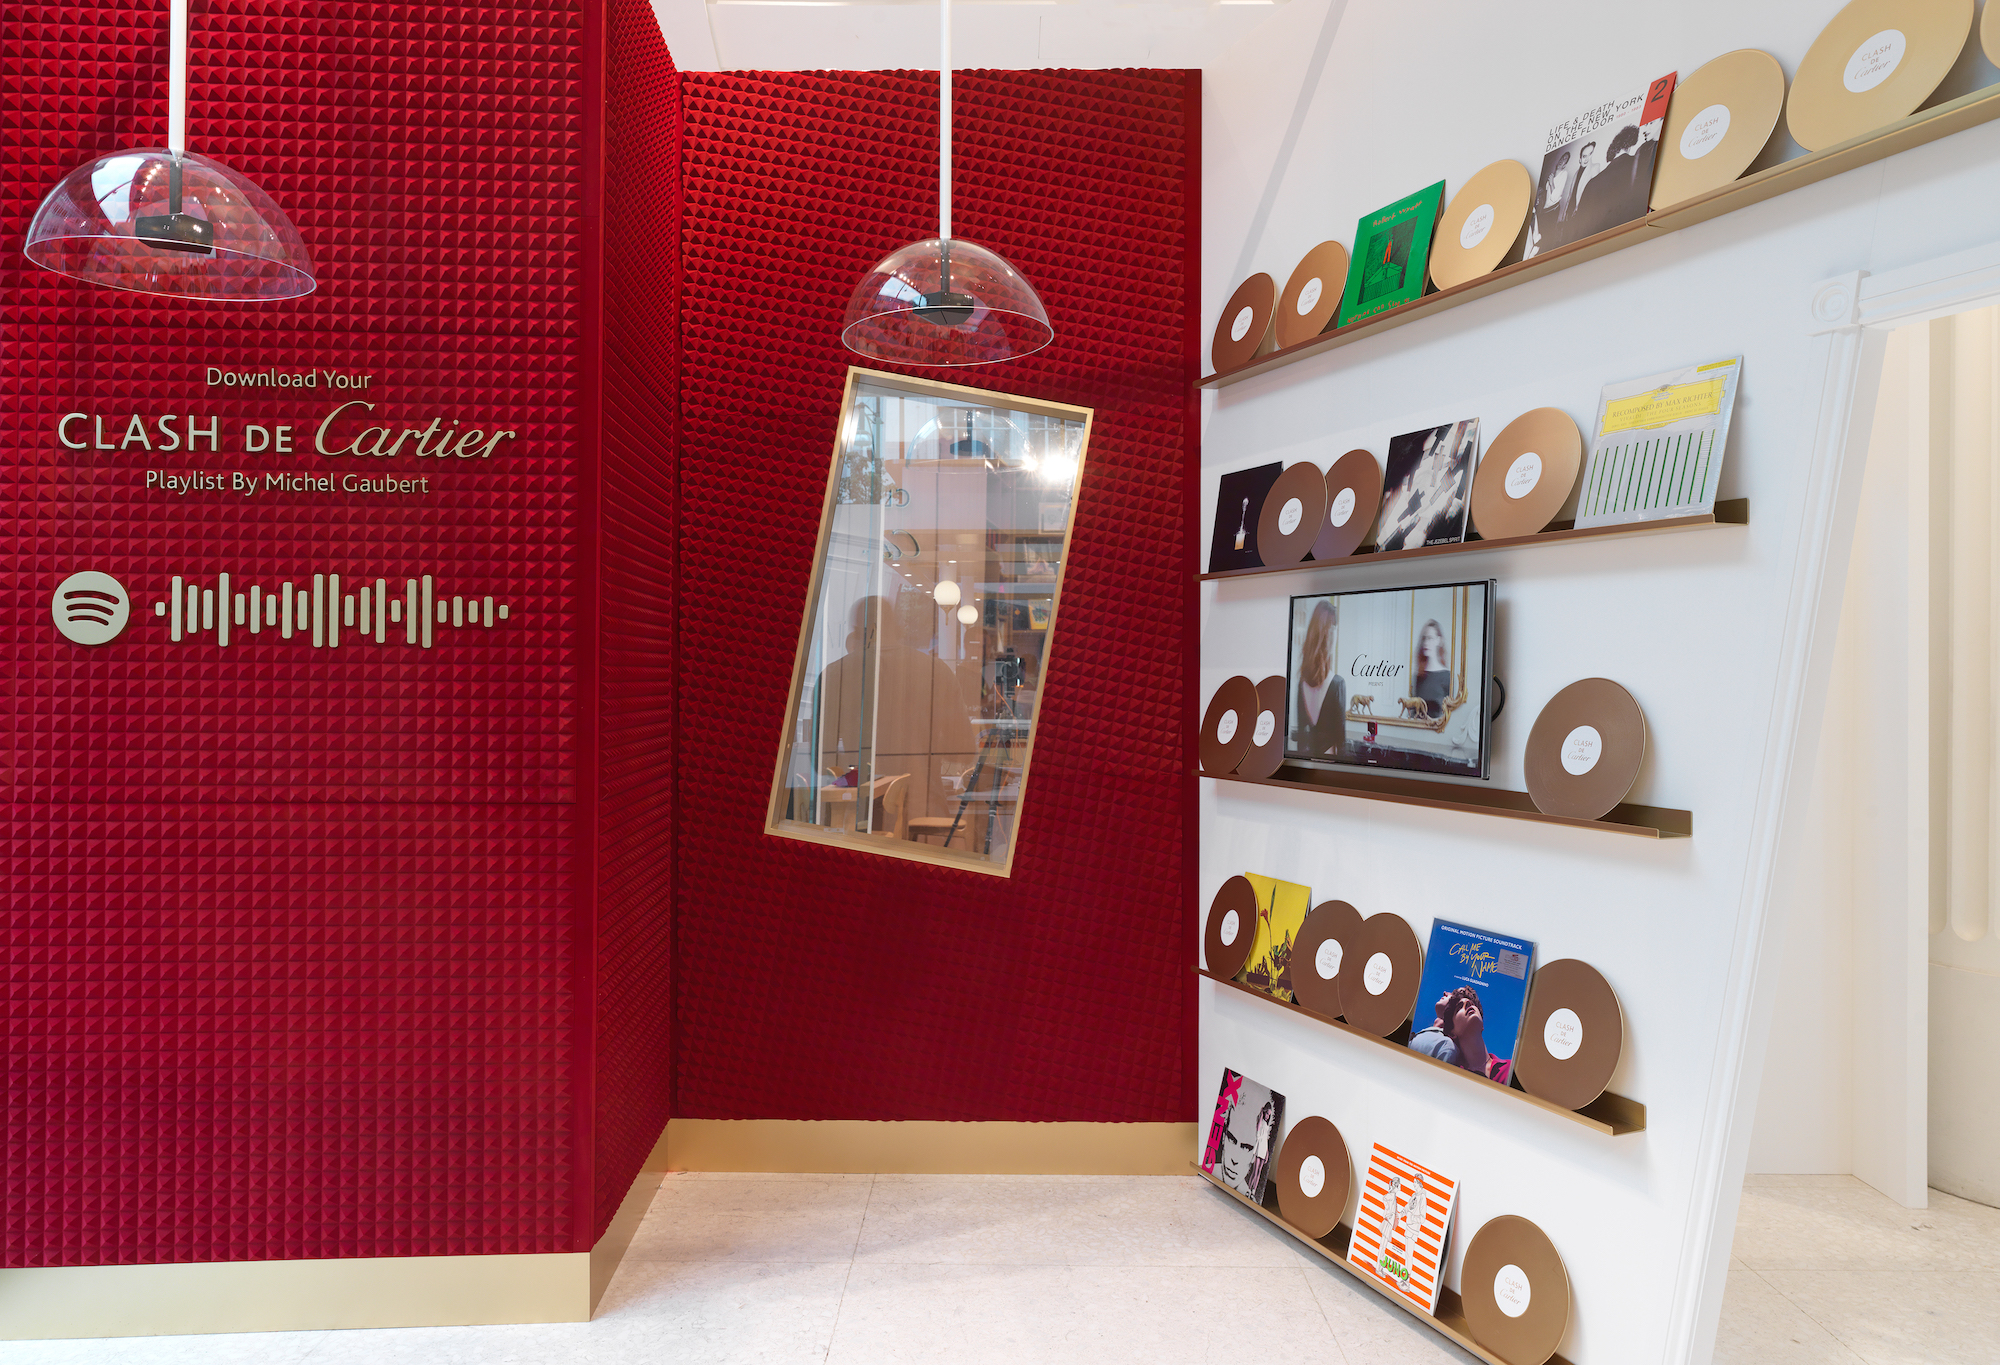 Wonderland magazine Clash de Cartier pop-up Selfridges playlist room